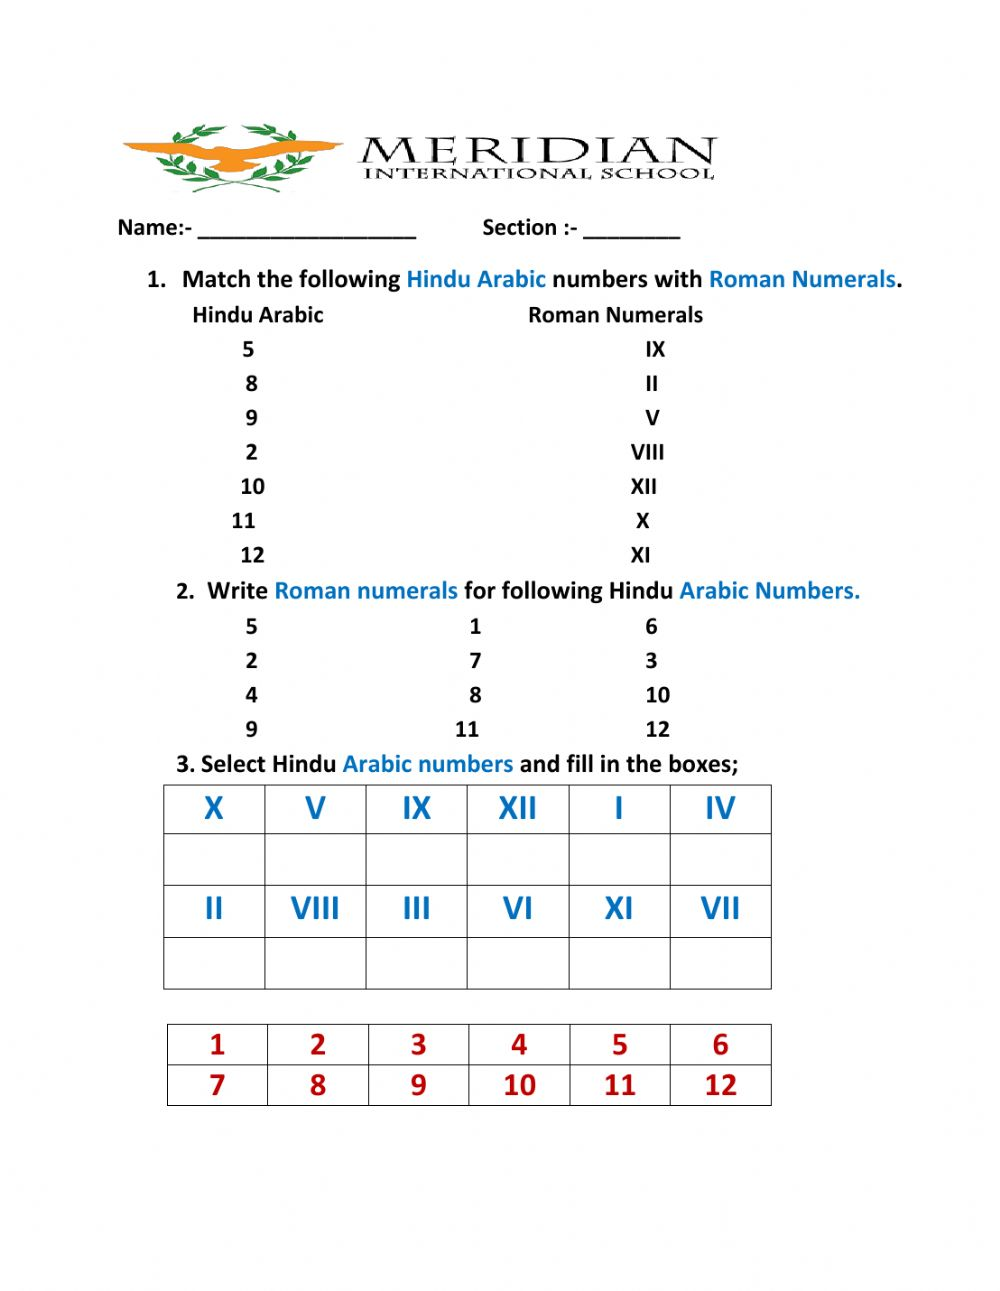 medium resolution of What Is Hindu Arabic And Roman Numerals